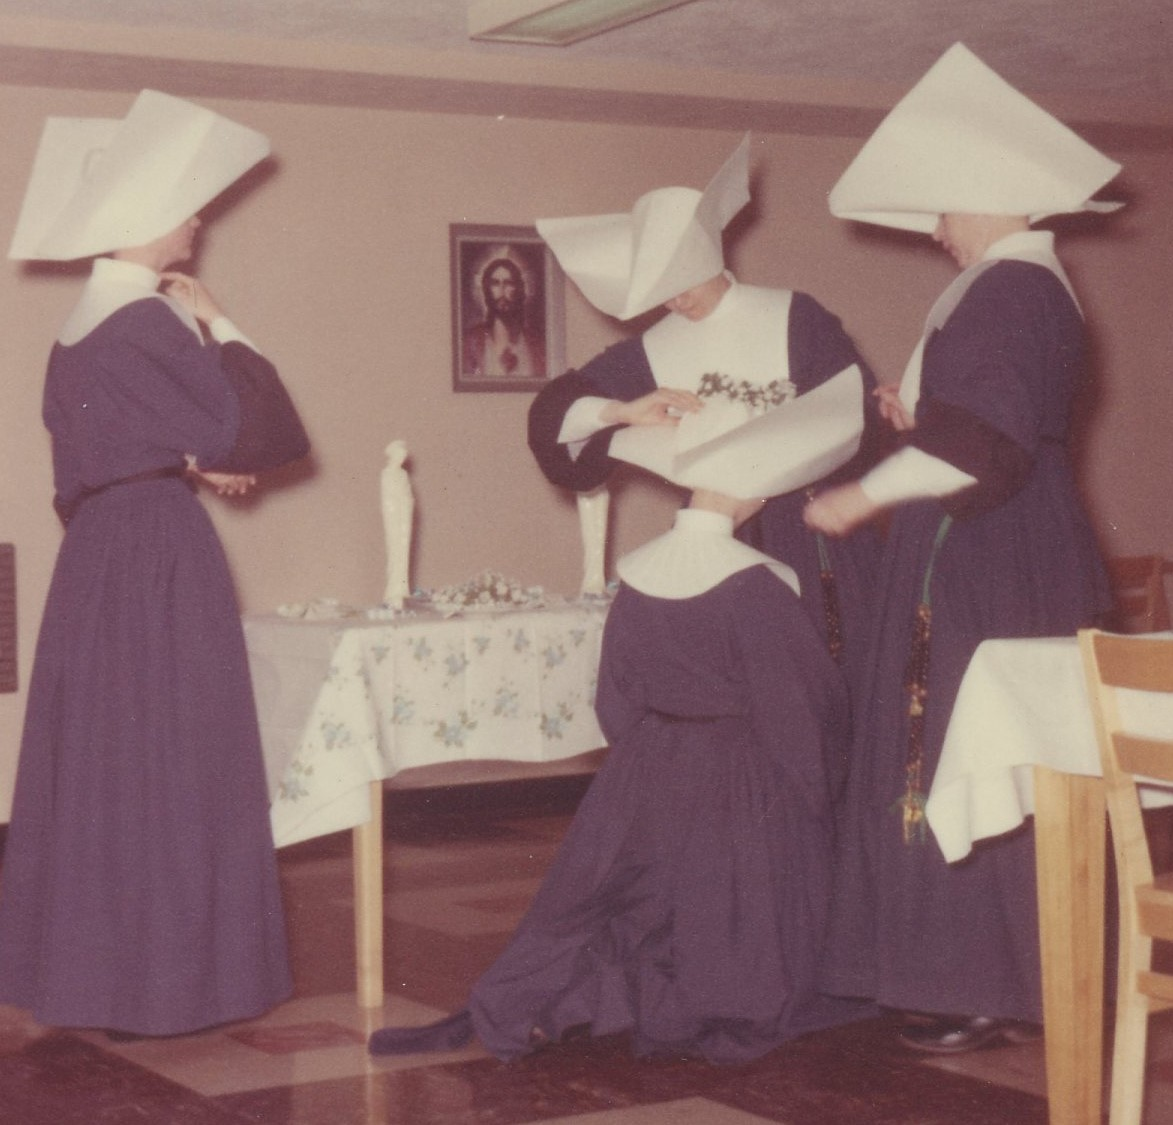 Vow Day Celebration - St. Catherine's Residence, Youngtown, OH - 1963 (2)